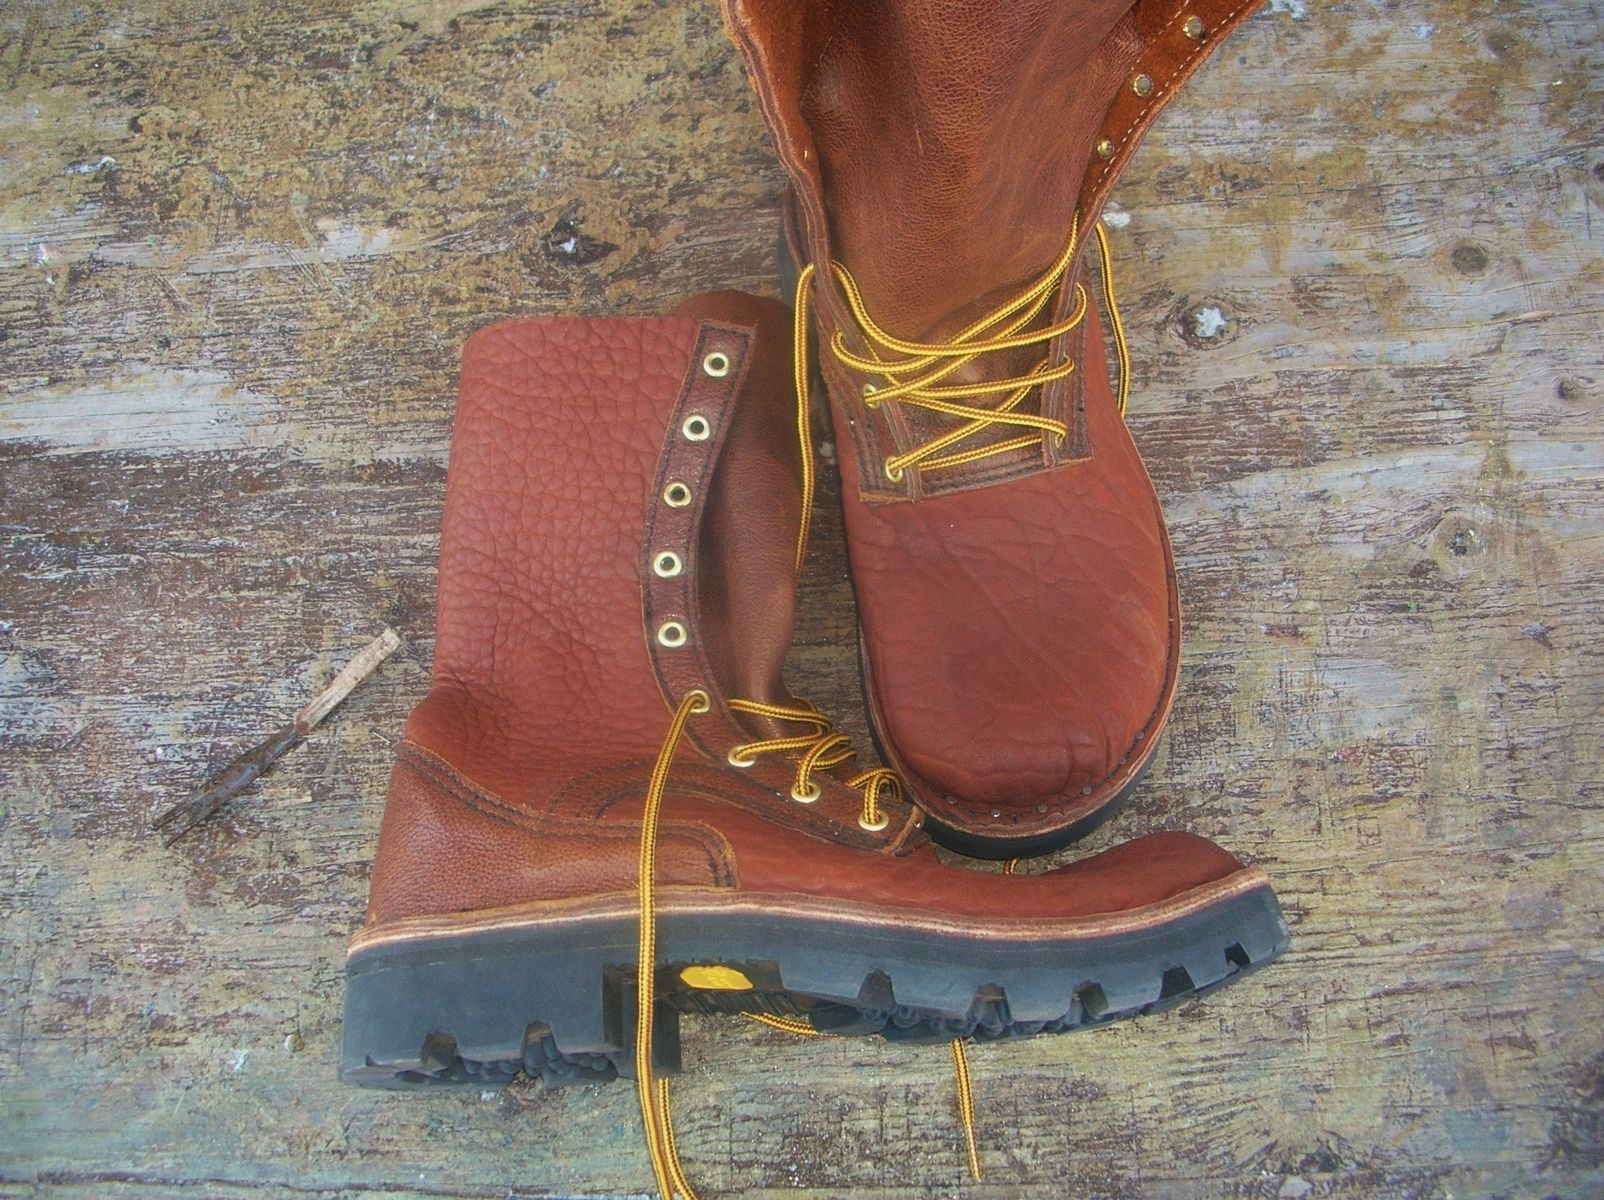 made front lace buffalo hide leather work boots by